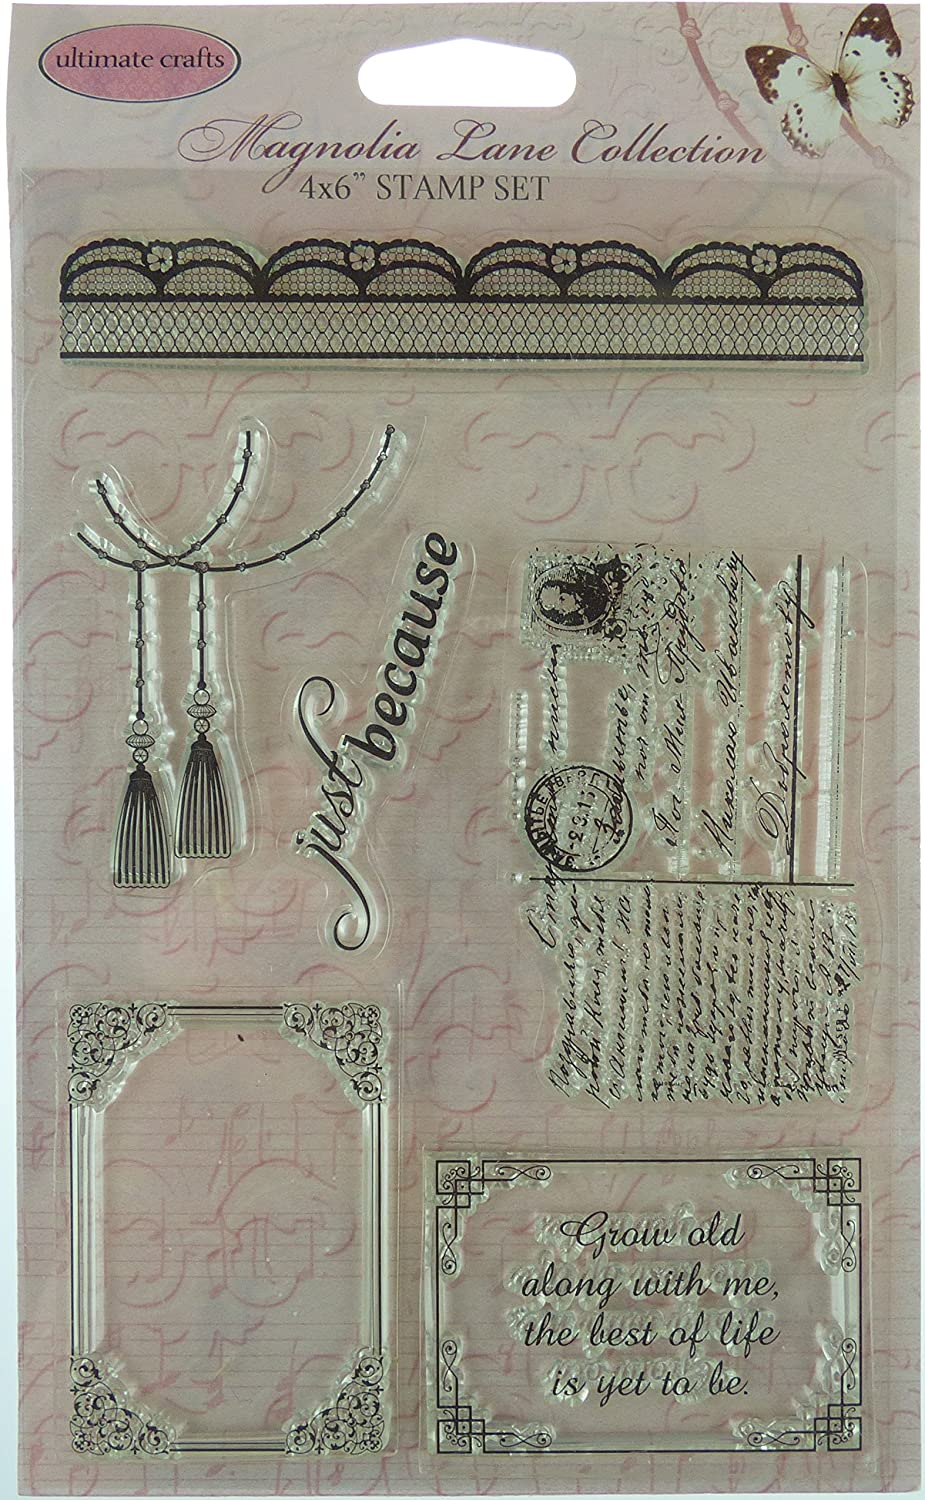 4x6 Ultimate Crafts Songbird Clear Stamp Set